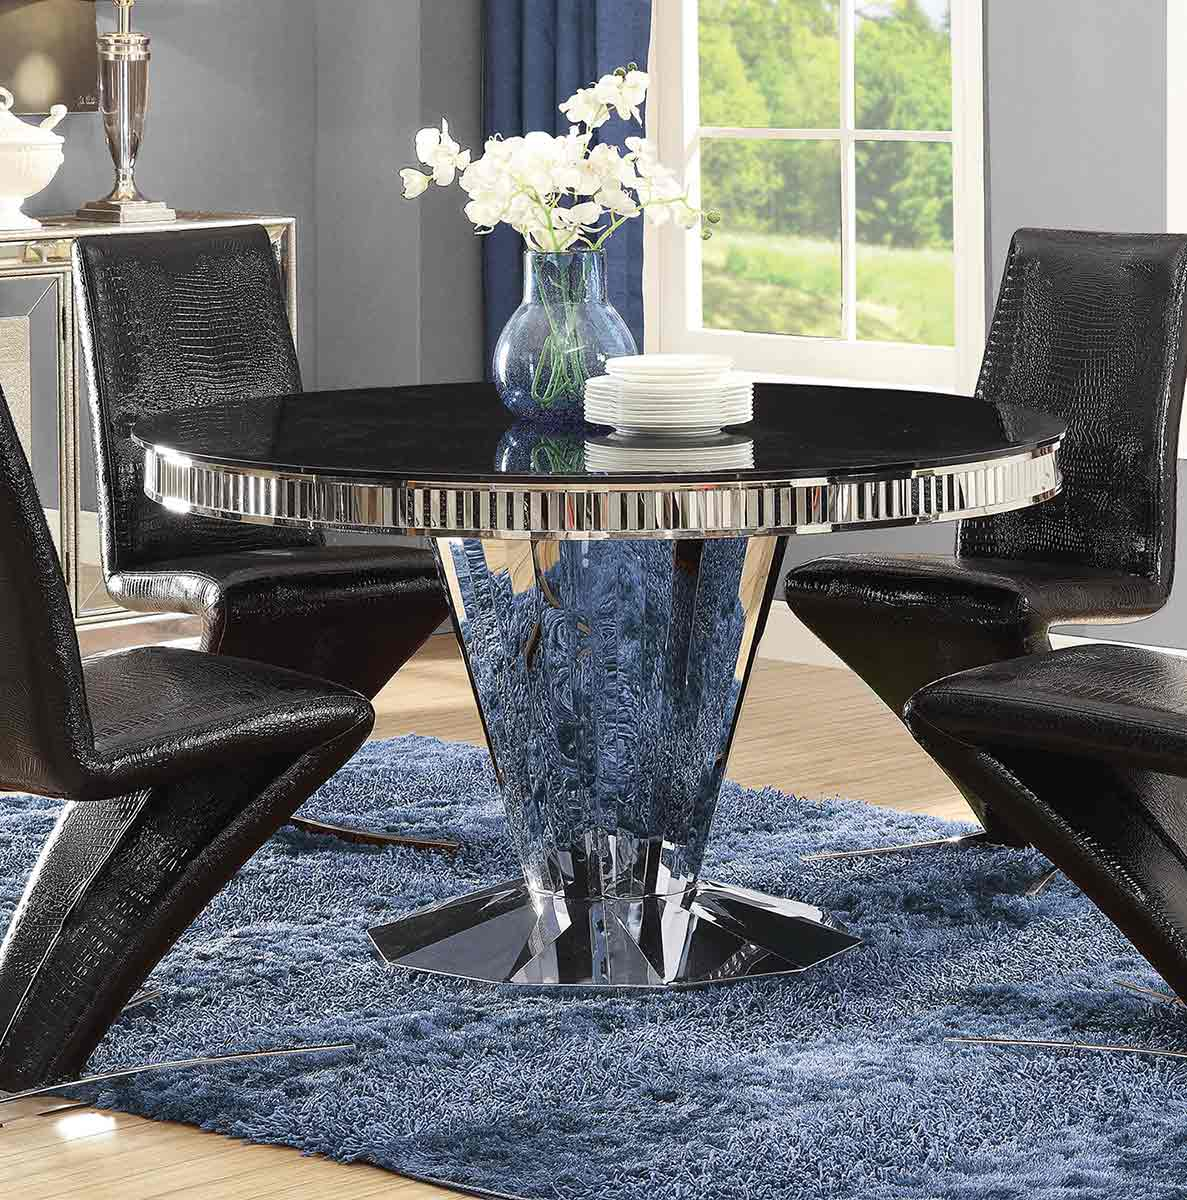 Coaster Barzini Round Dining Table - Stainless Steel